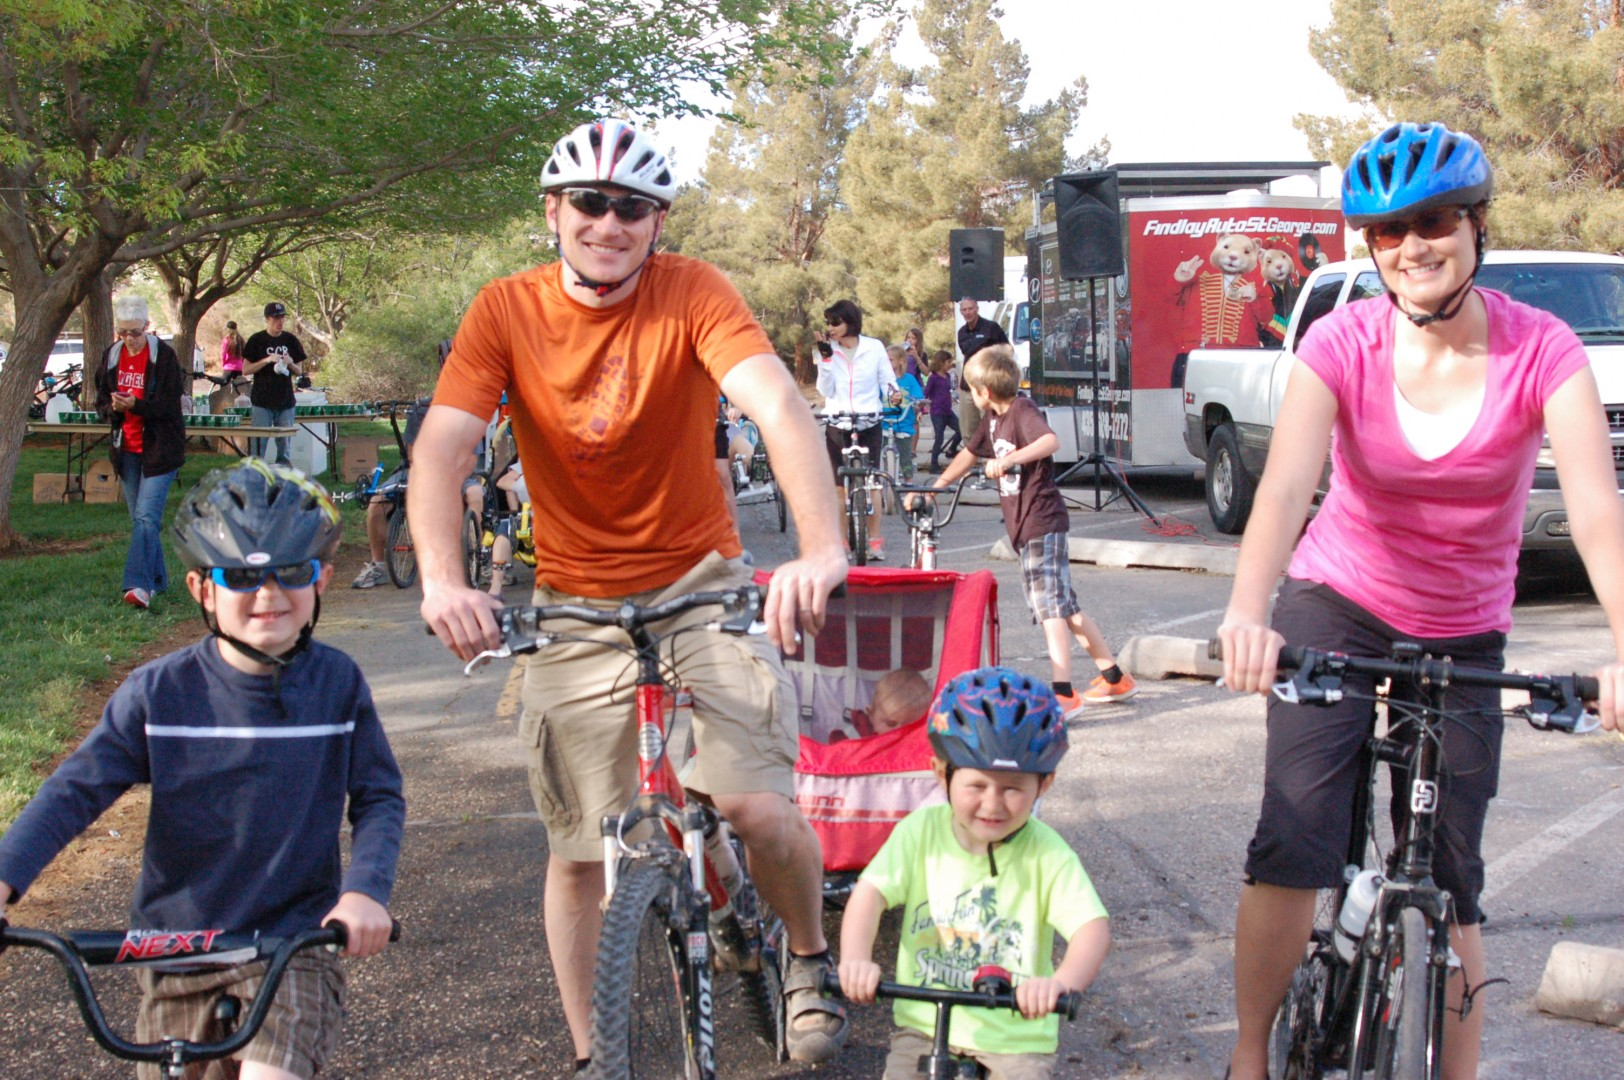 The McCausland family, L-R Rockwell, 6, Luke, Grant, 3, and Tara (10 month old Logan in back), waits for their turn to start riding at the Family Fun Bike Ride, held at Tonaquint Nature Center, St. George, Utah, April 12, 2014 | Photo by Hollie Reina, St. George News